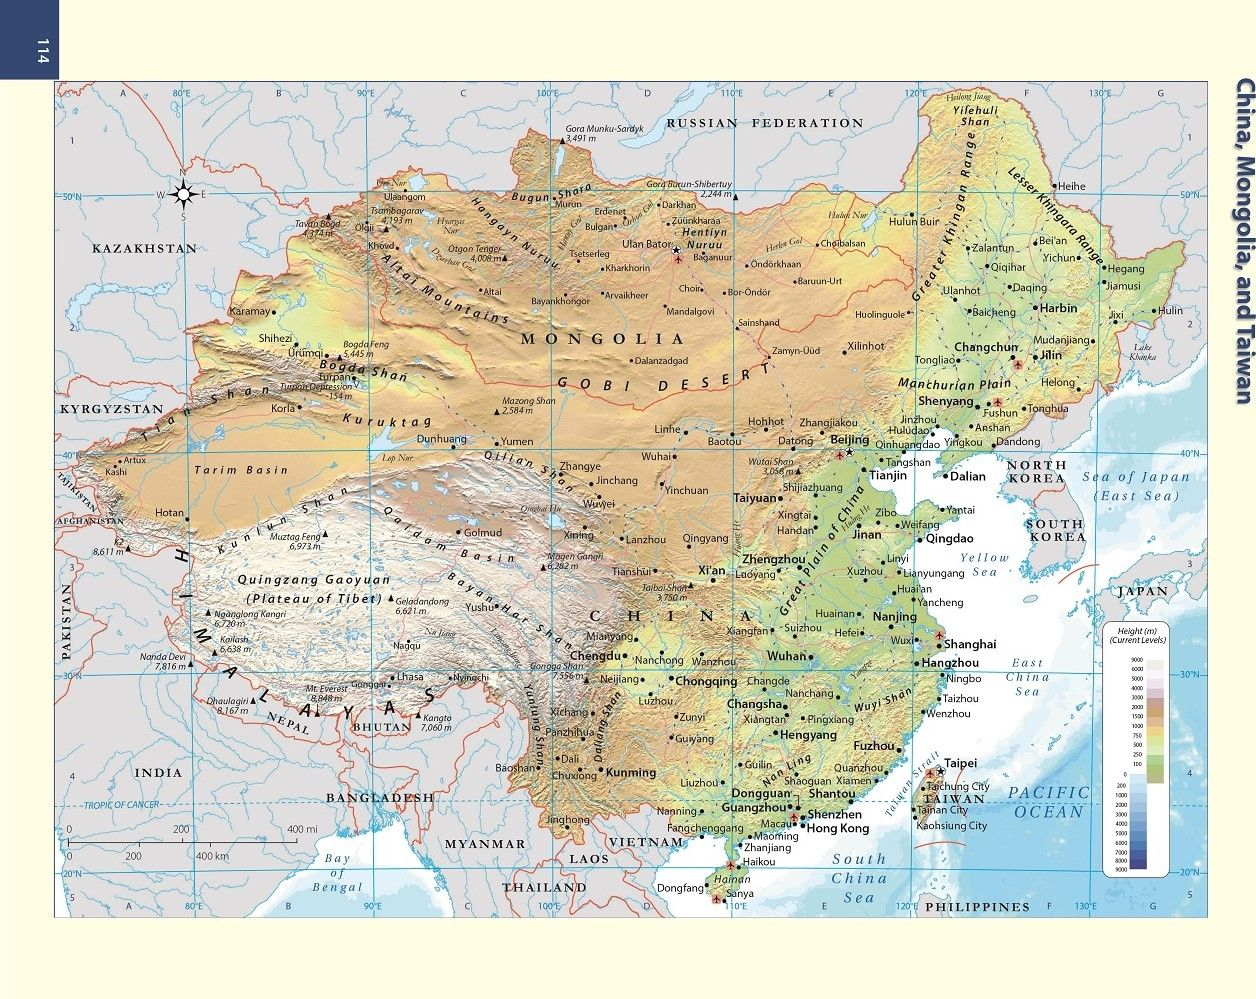 china mongolia and taiwan physical map Map Of China Mongolia And Taiwan china mongolia and taiwan physical map